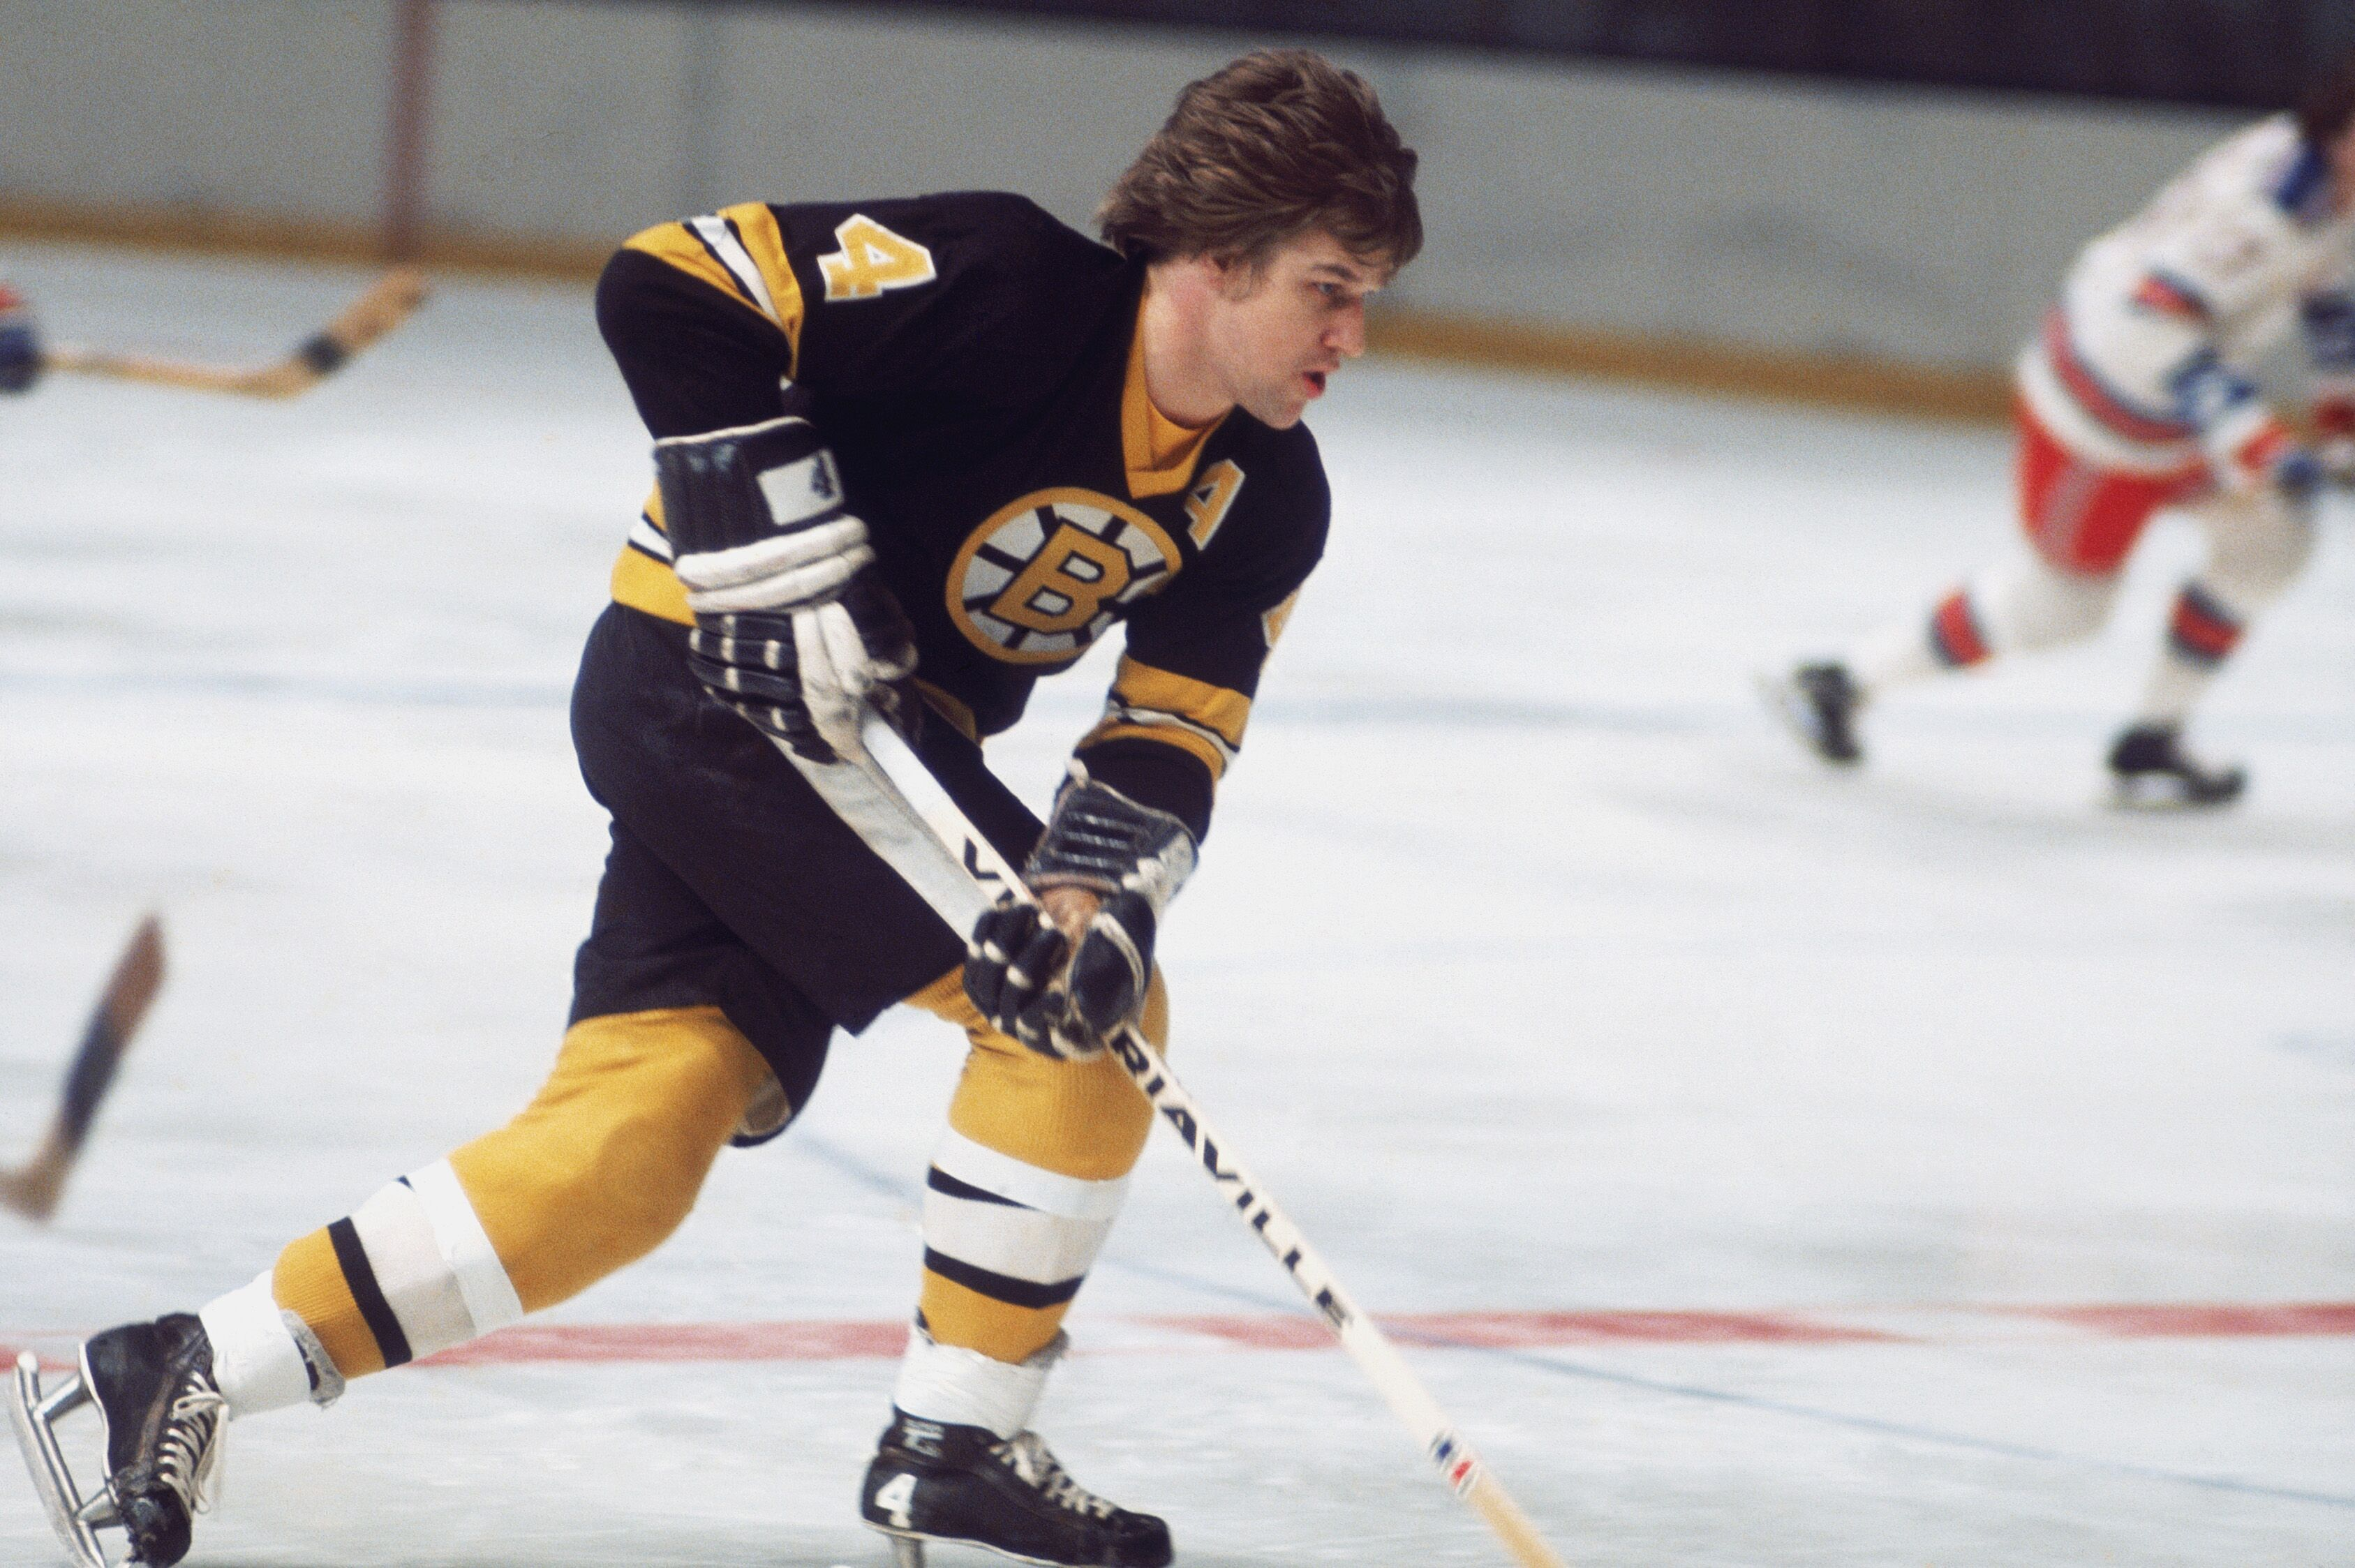 NHL All-Time Greats: 1970s All-Decade Team Bruins Roster Nhl